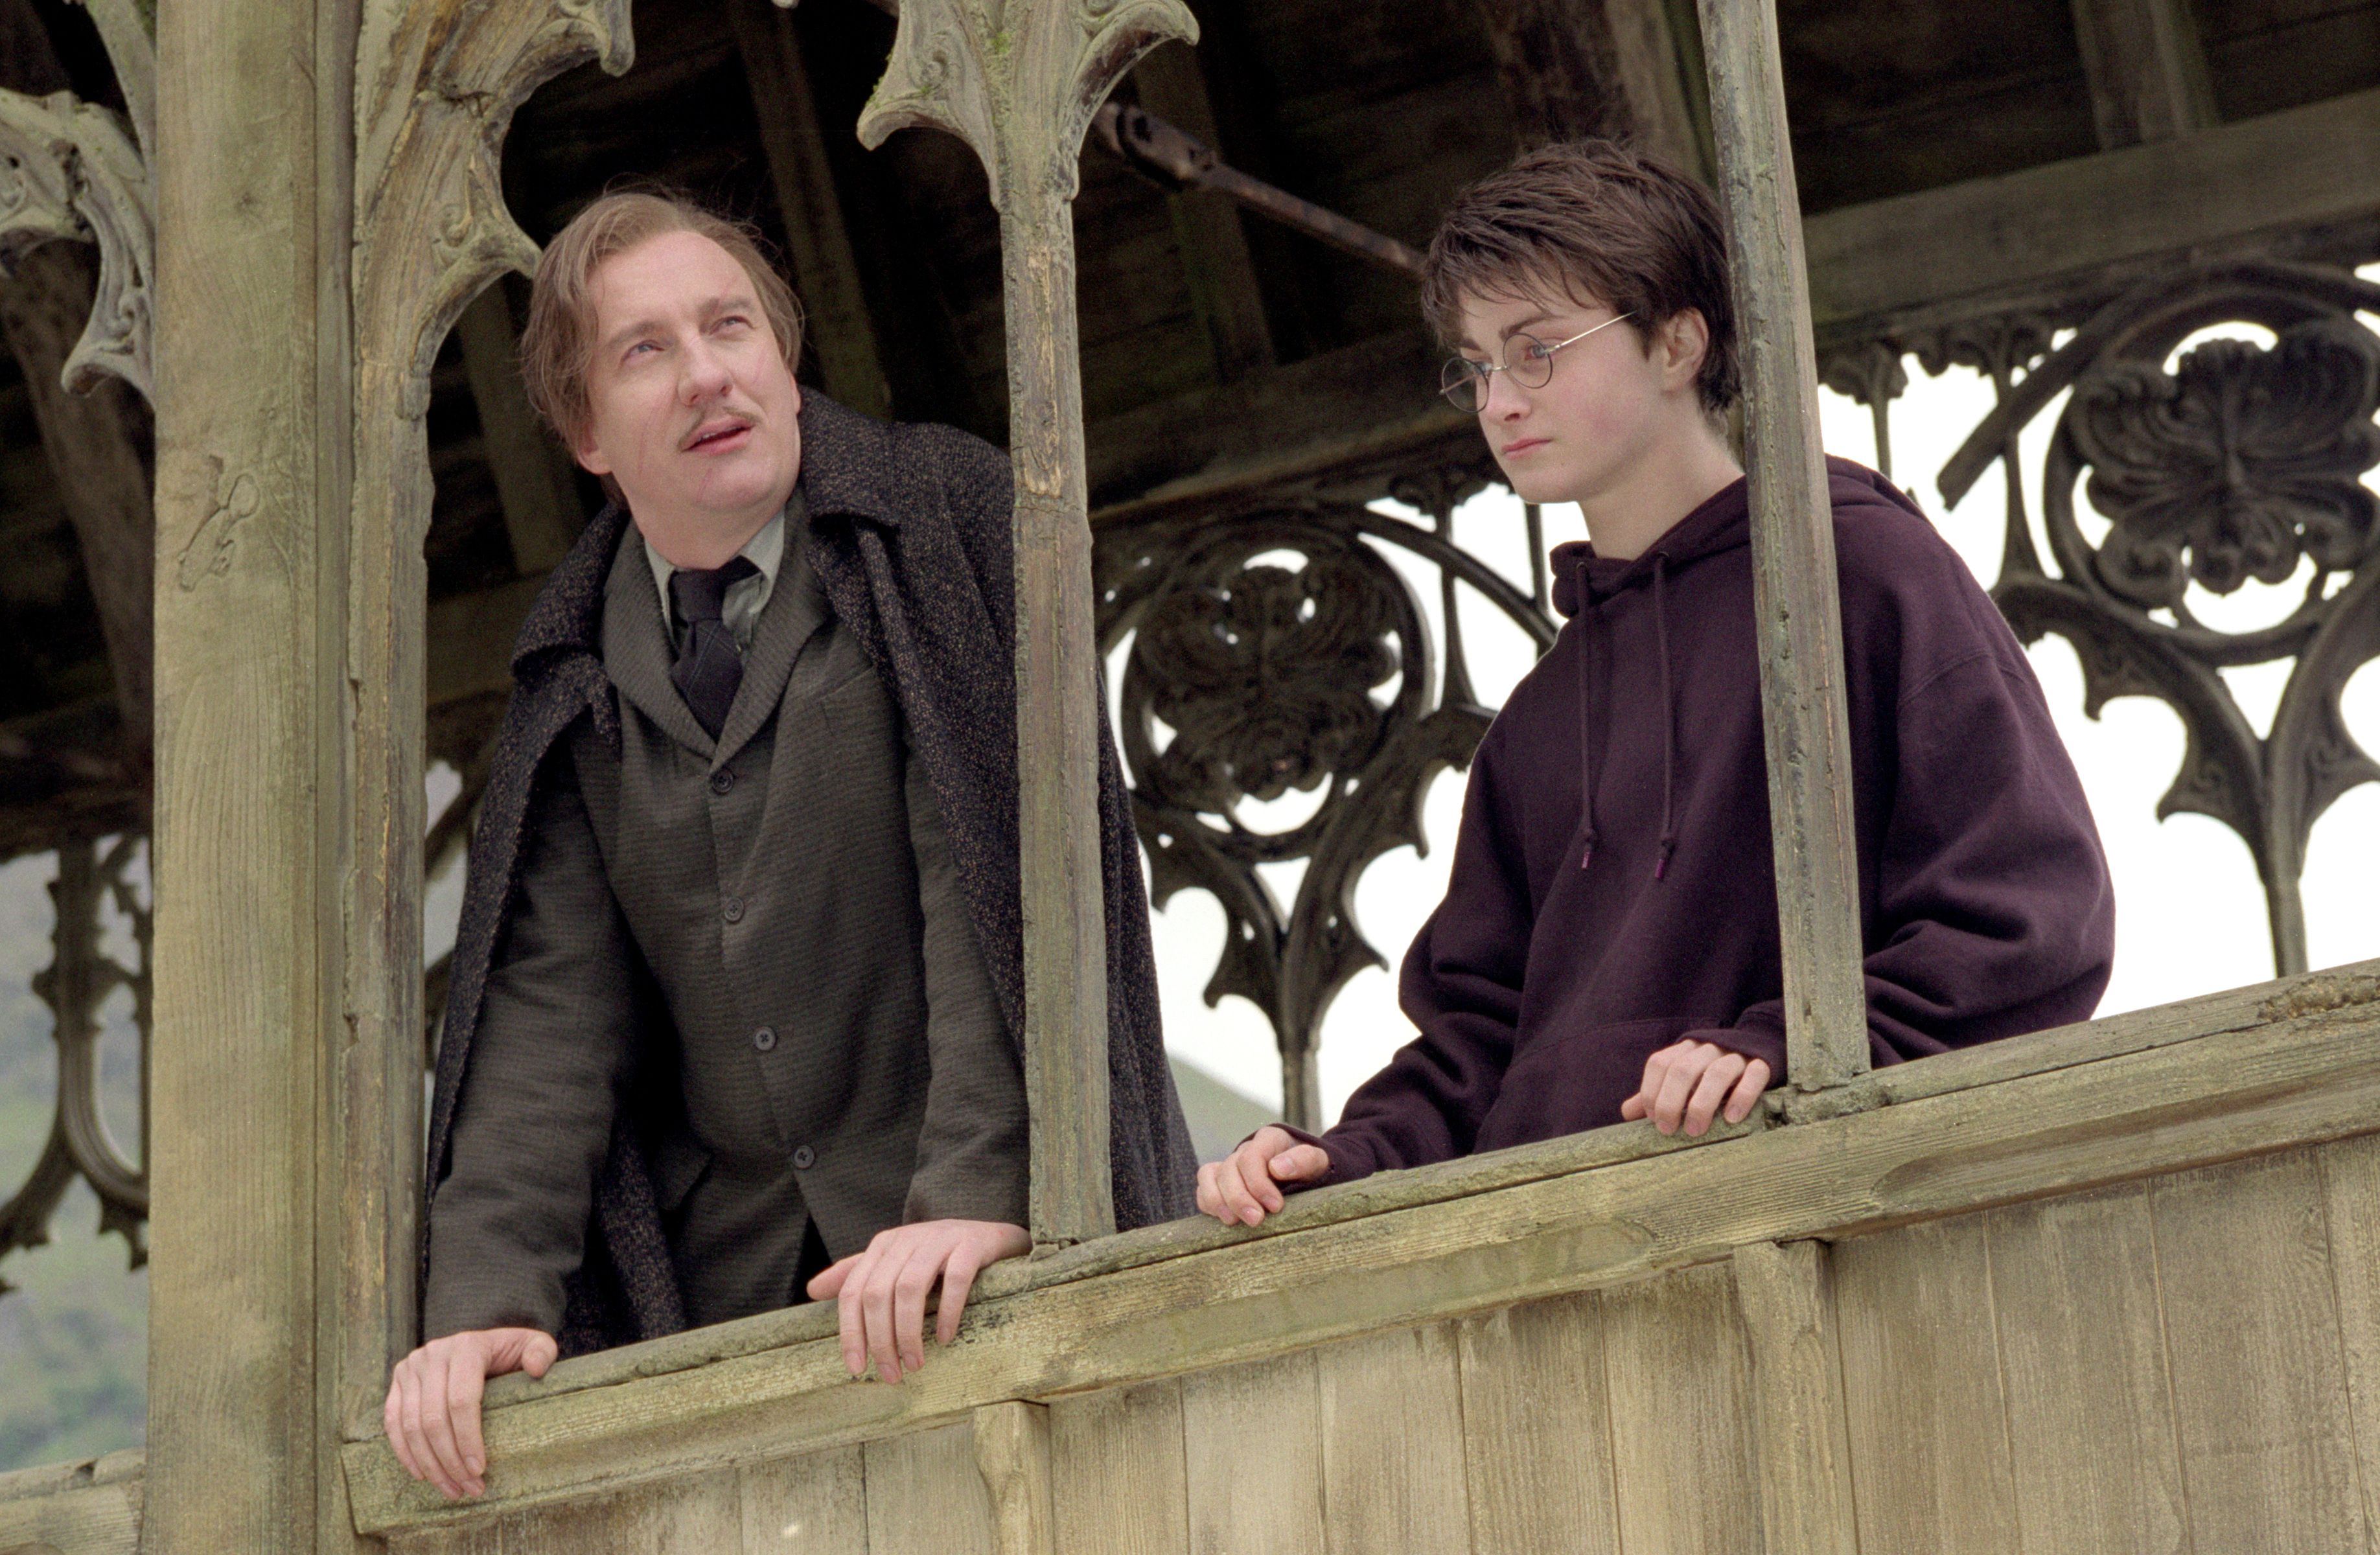 Your Mother Was There For Me At A Time When No One Else Was Not Only Was She A Singul Peliculas De Harry Potter Prisionero De Azkaban Cancion De Harry Potter